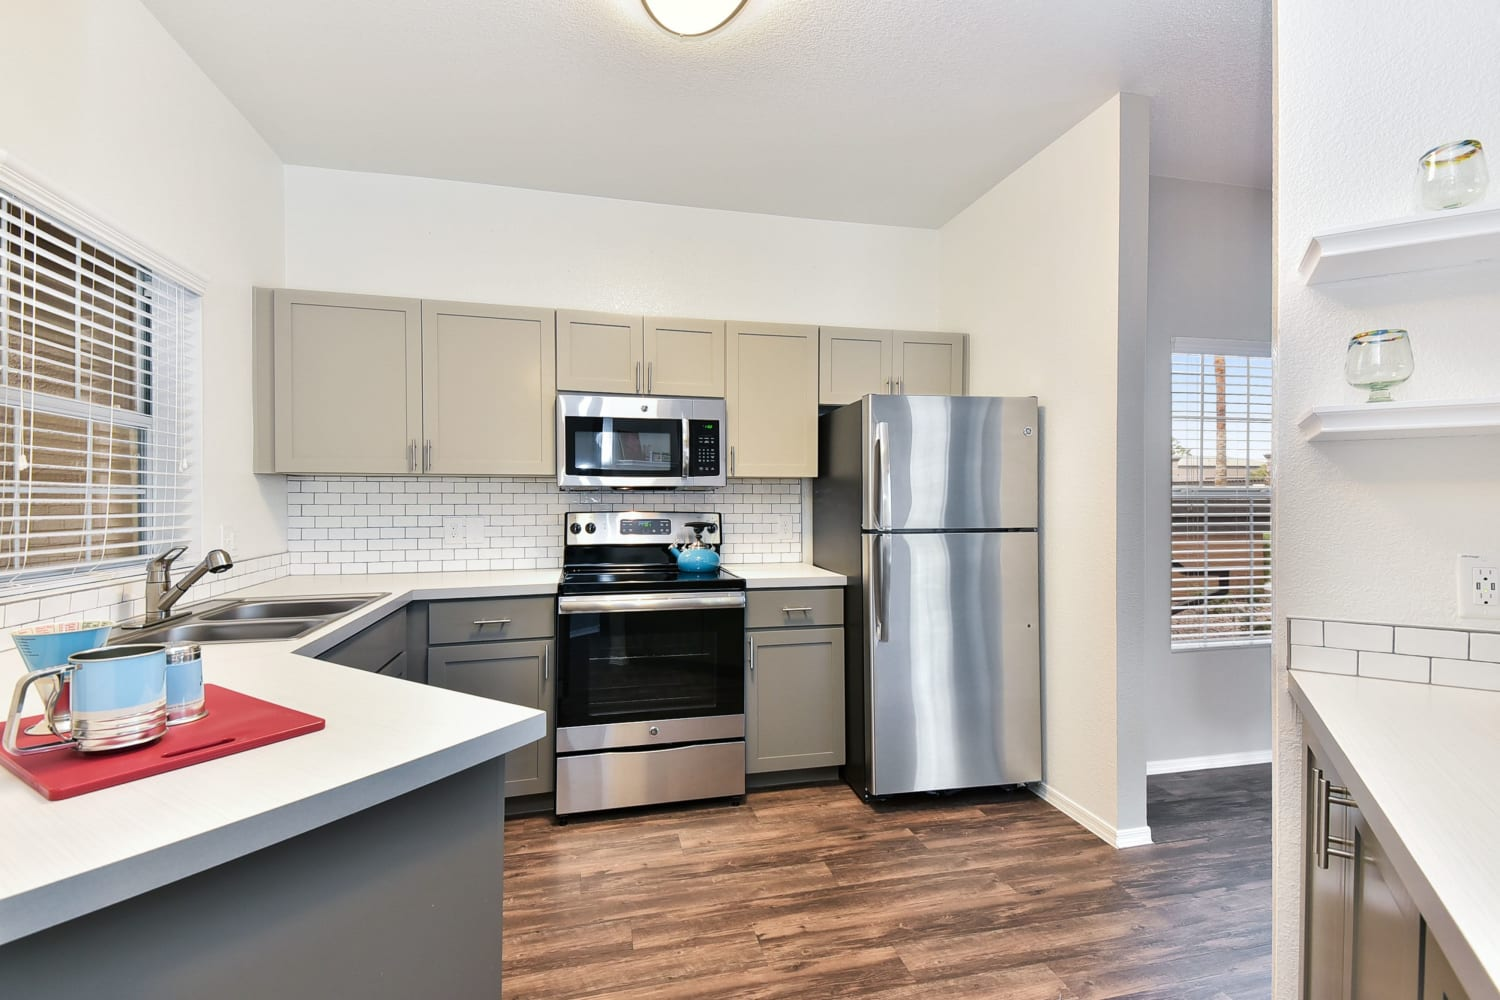 Model kitchen at Luxe @ Ocotillo in Chandler, Arizona